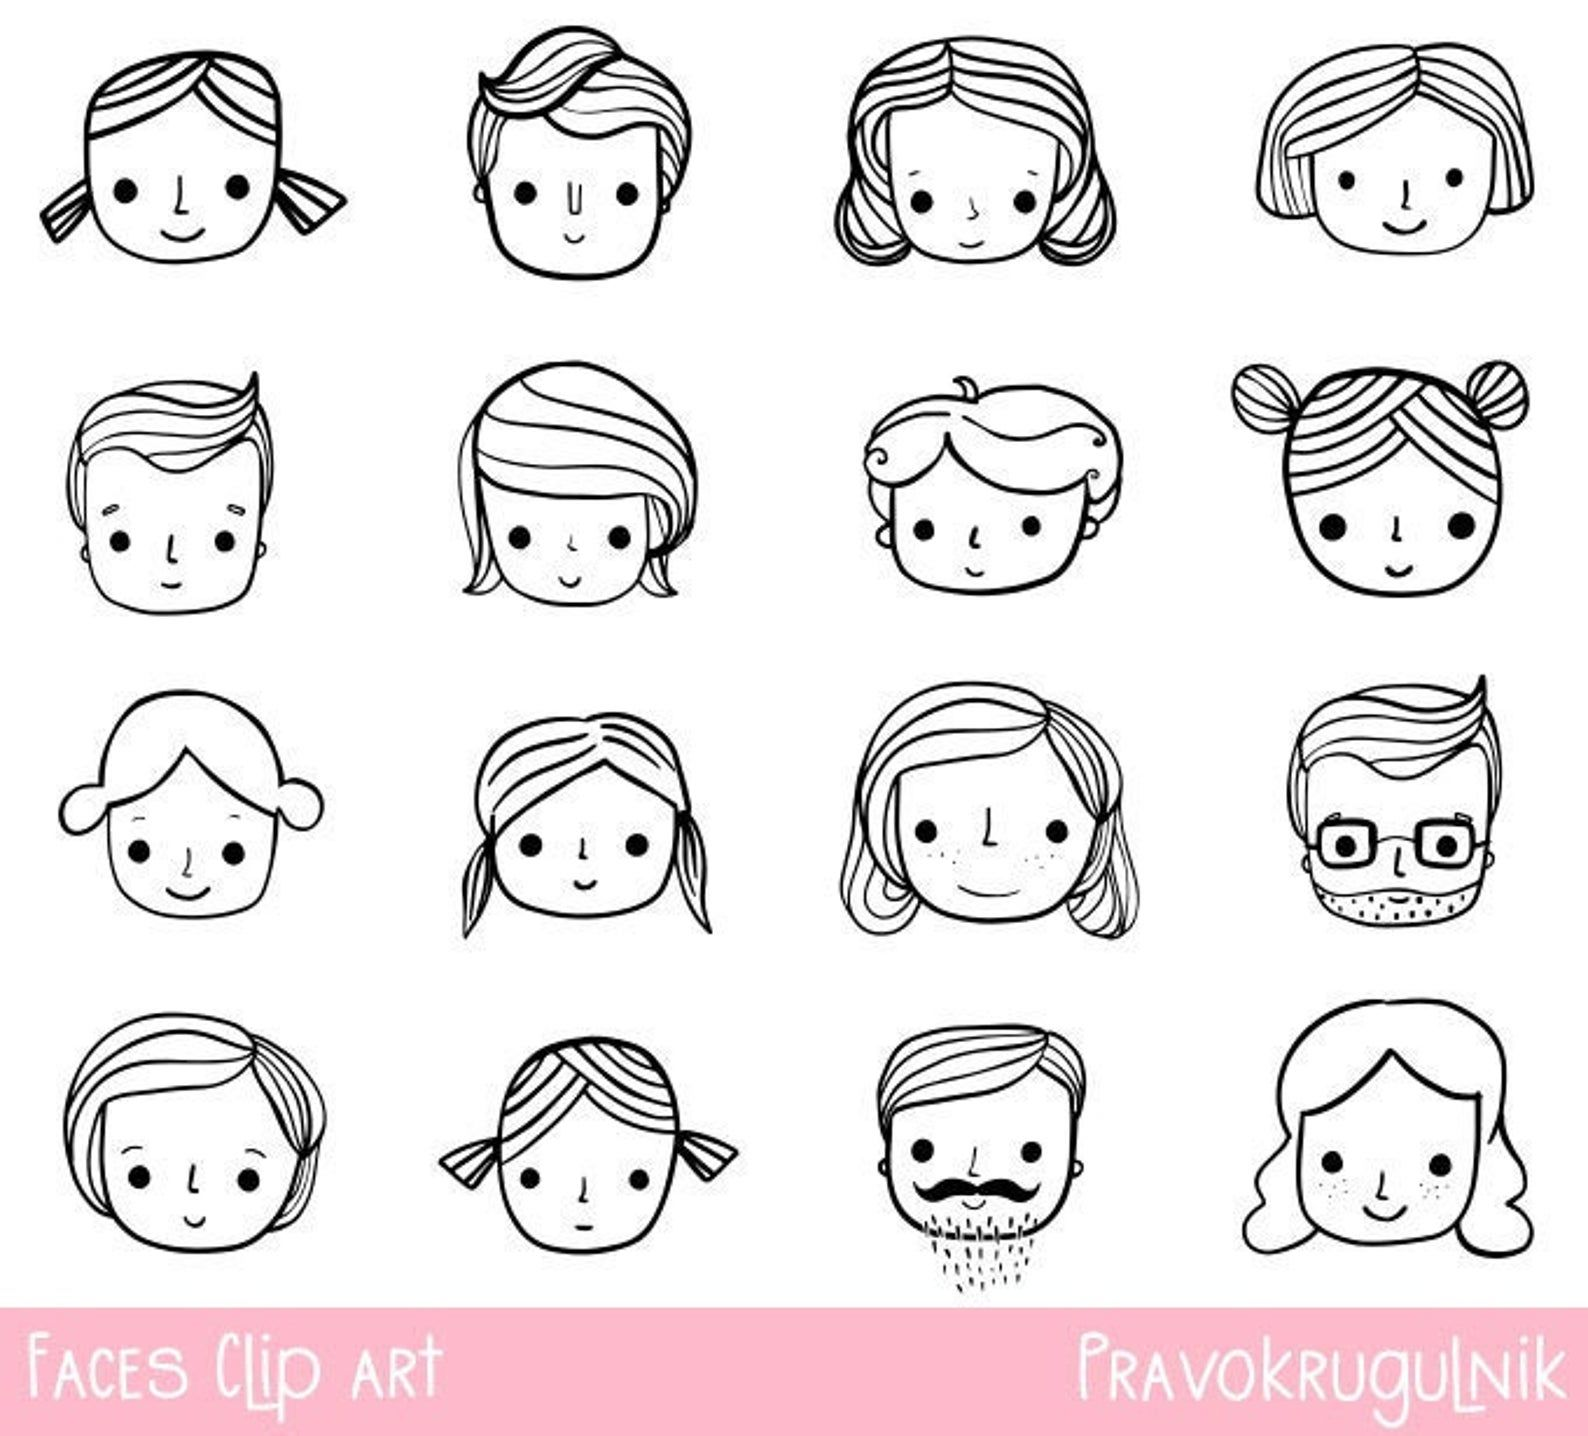 Hand Drawn Faces Clip Art Doodle Outline Face Clipart Black Etsy In 2021 How To Draw Hands Face Doodles Face Drawing